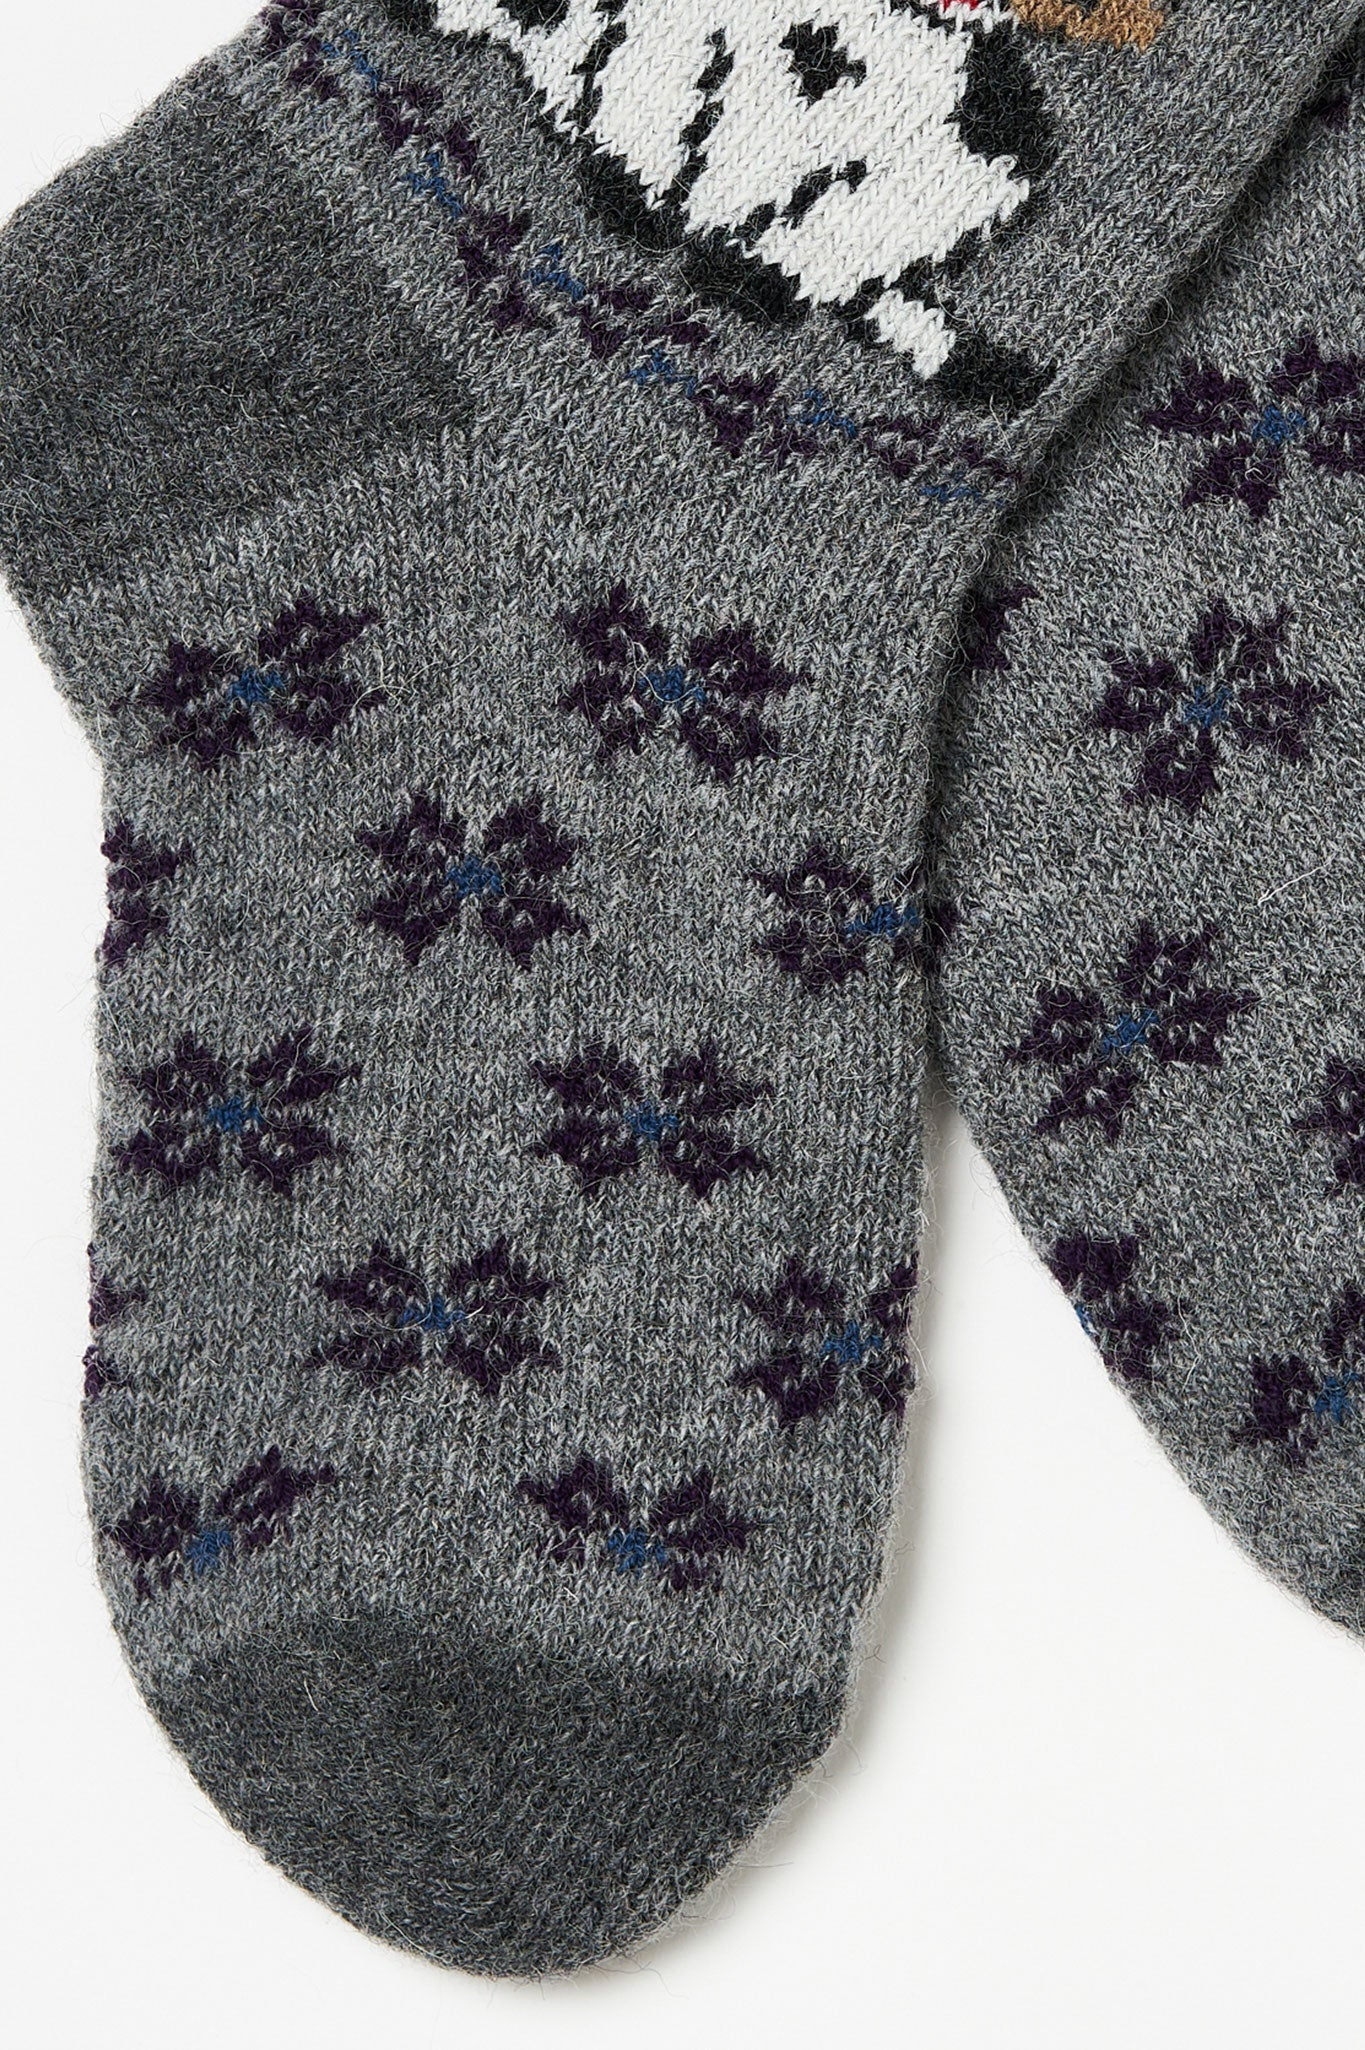 Cows wool socks